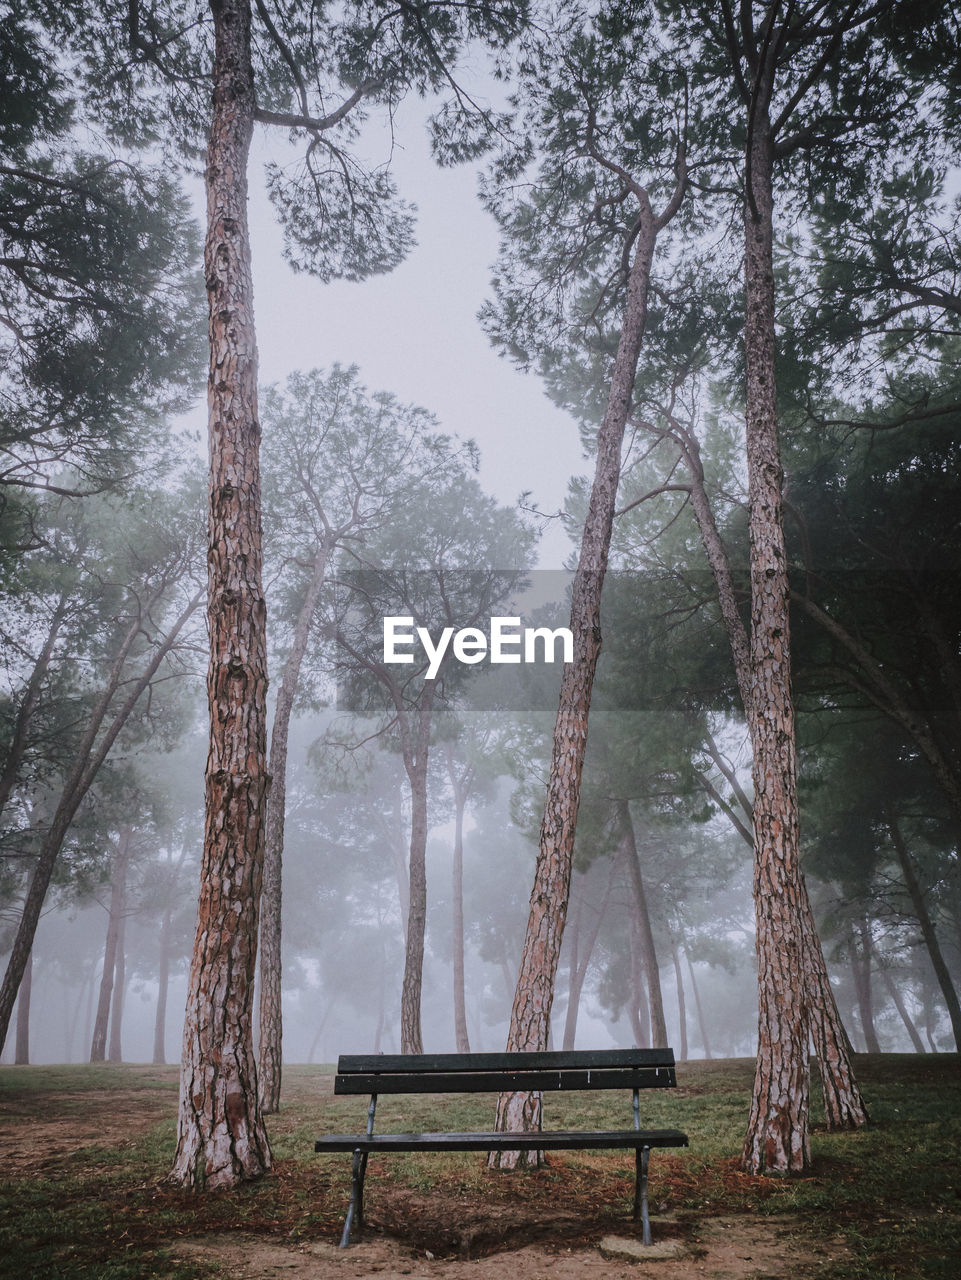 Empty bench by trees in forest in a foggy morning